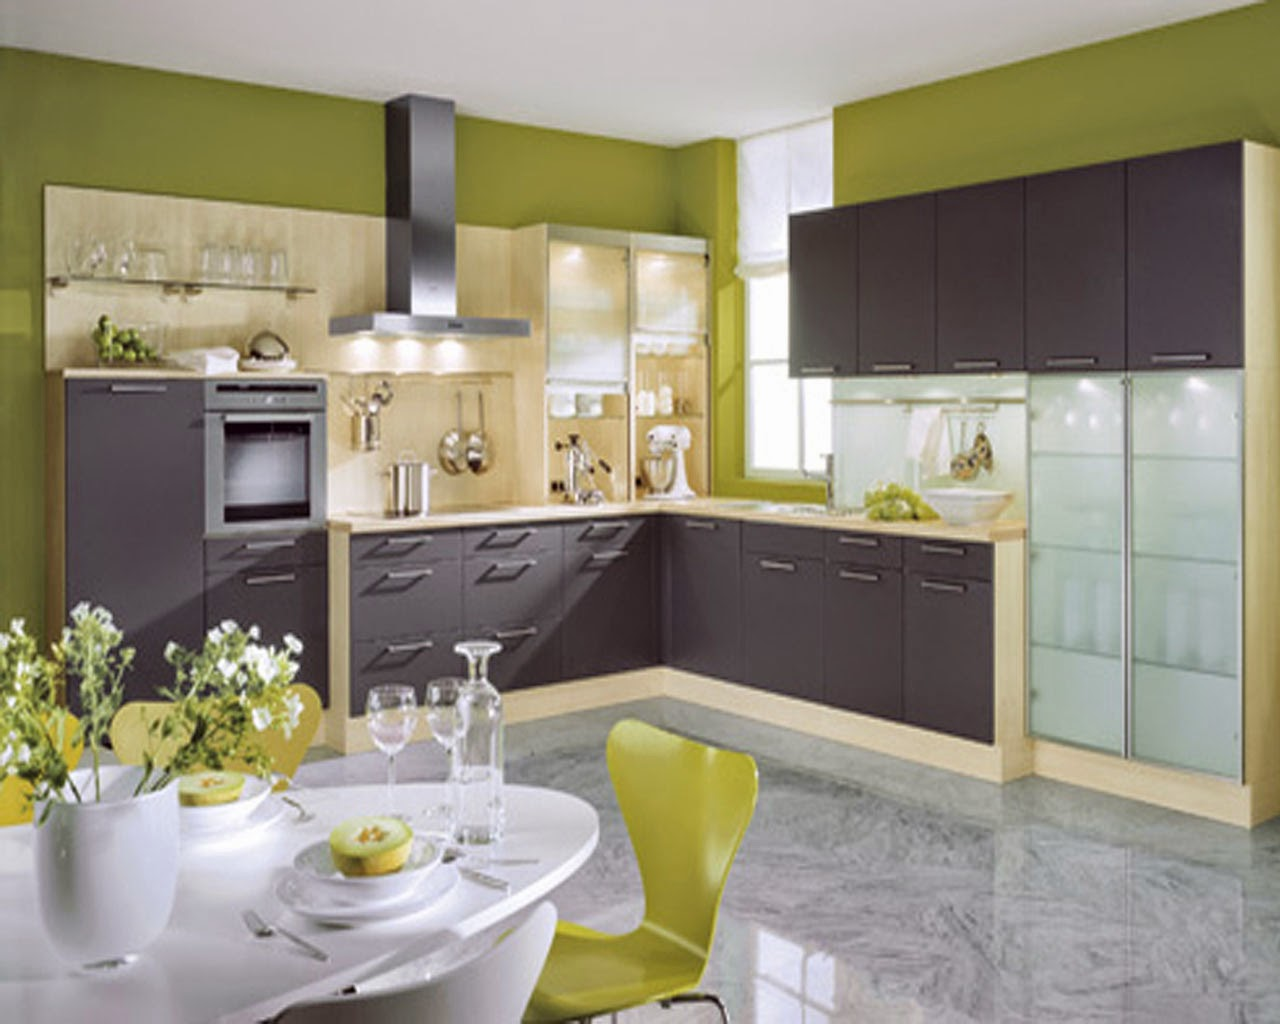 Kitchen designing ideas 2014 freshnist design for Kitchen style design